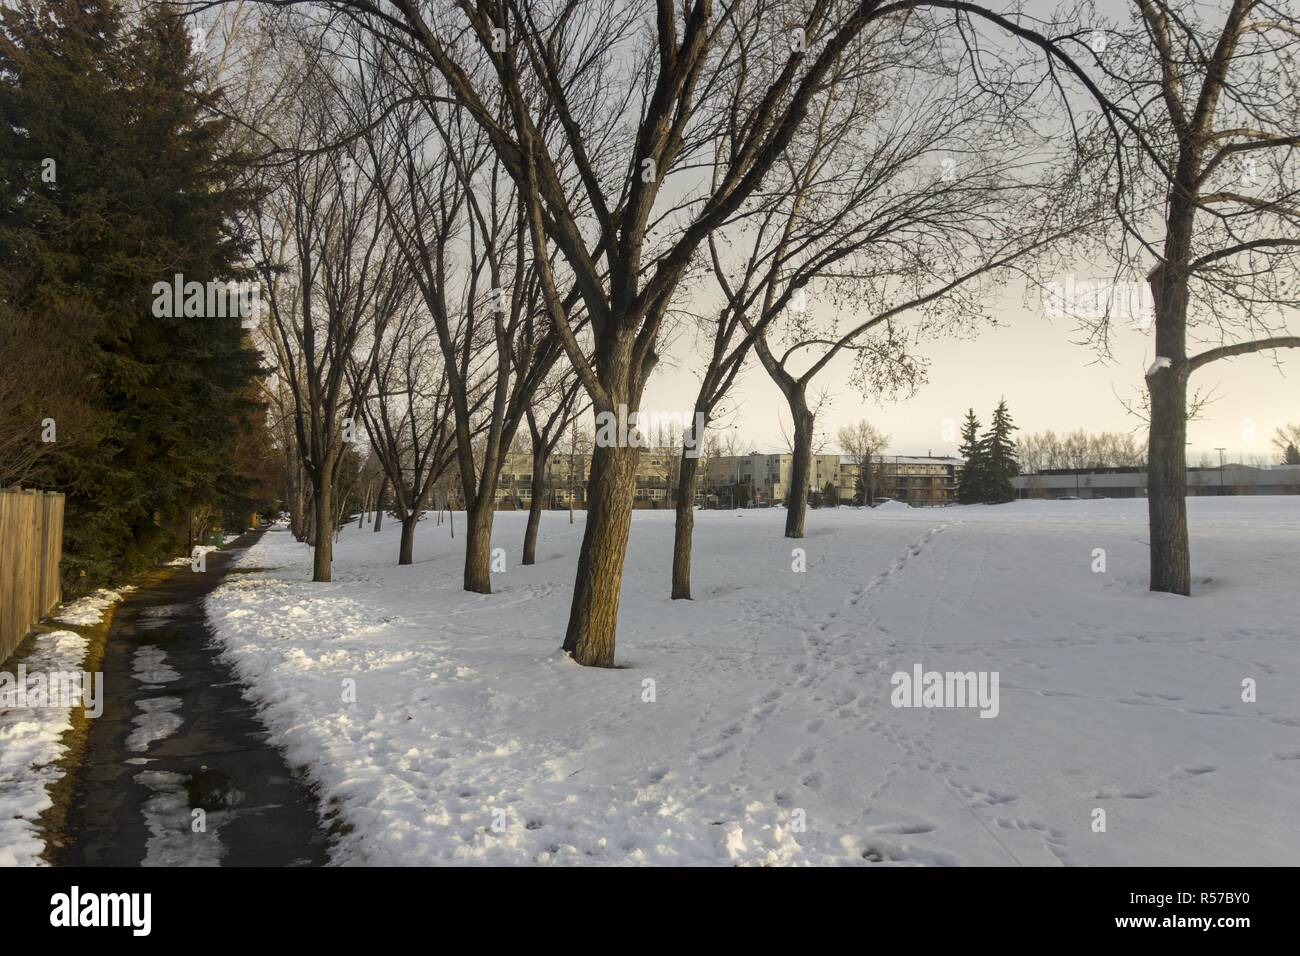 lonely-path-in-snowy-park-and-barren-asp